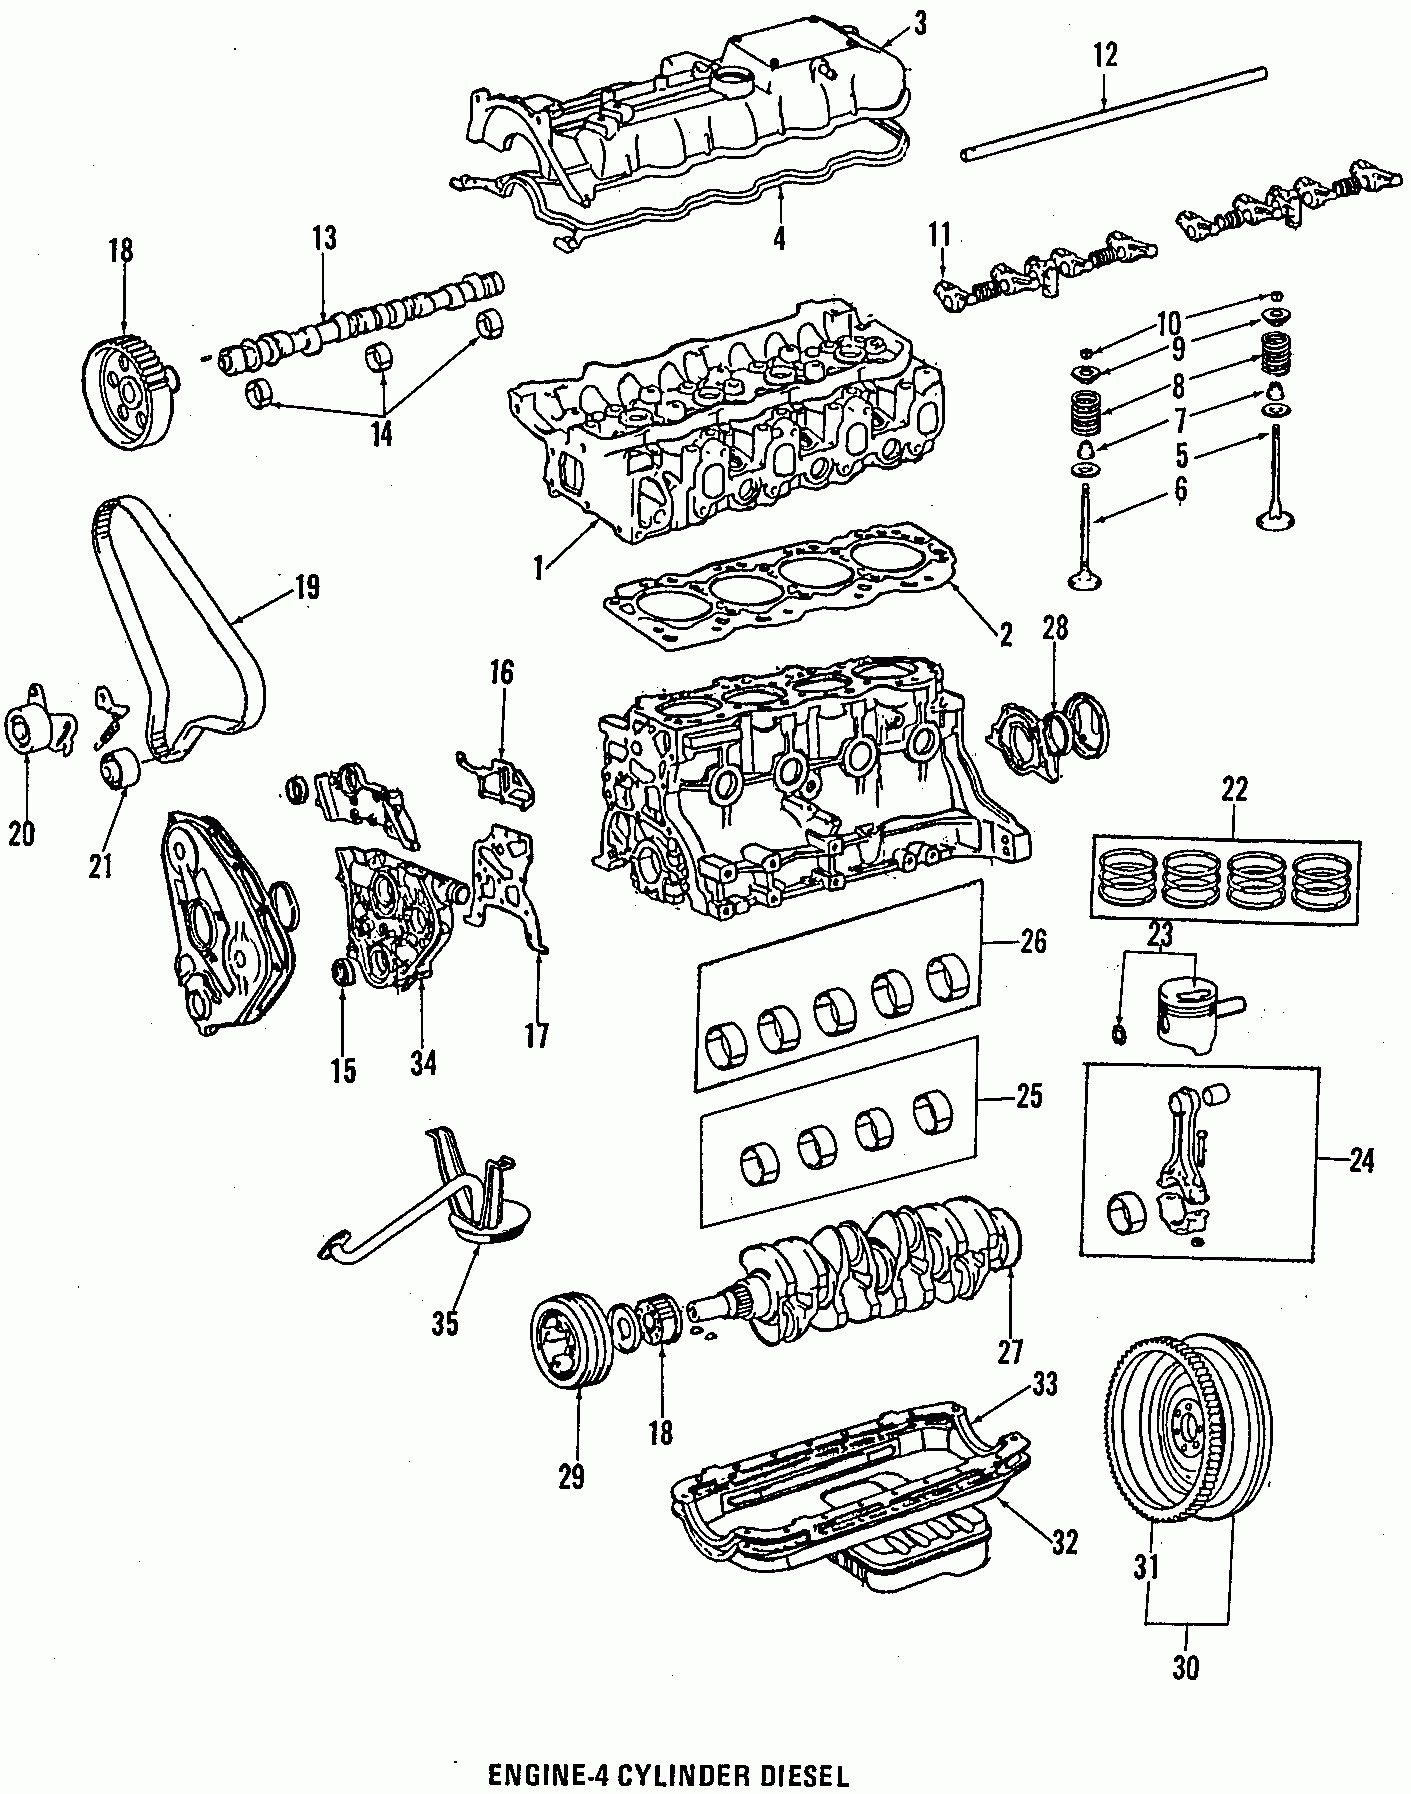 2004 toyota corolla oem parts diagram wiring schematic